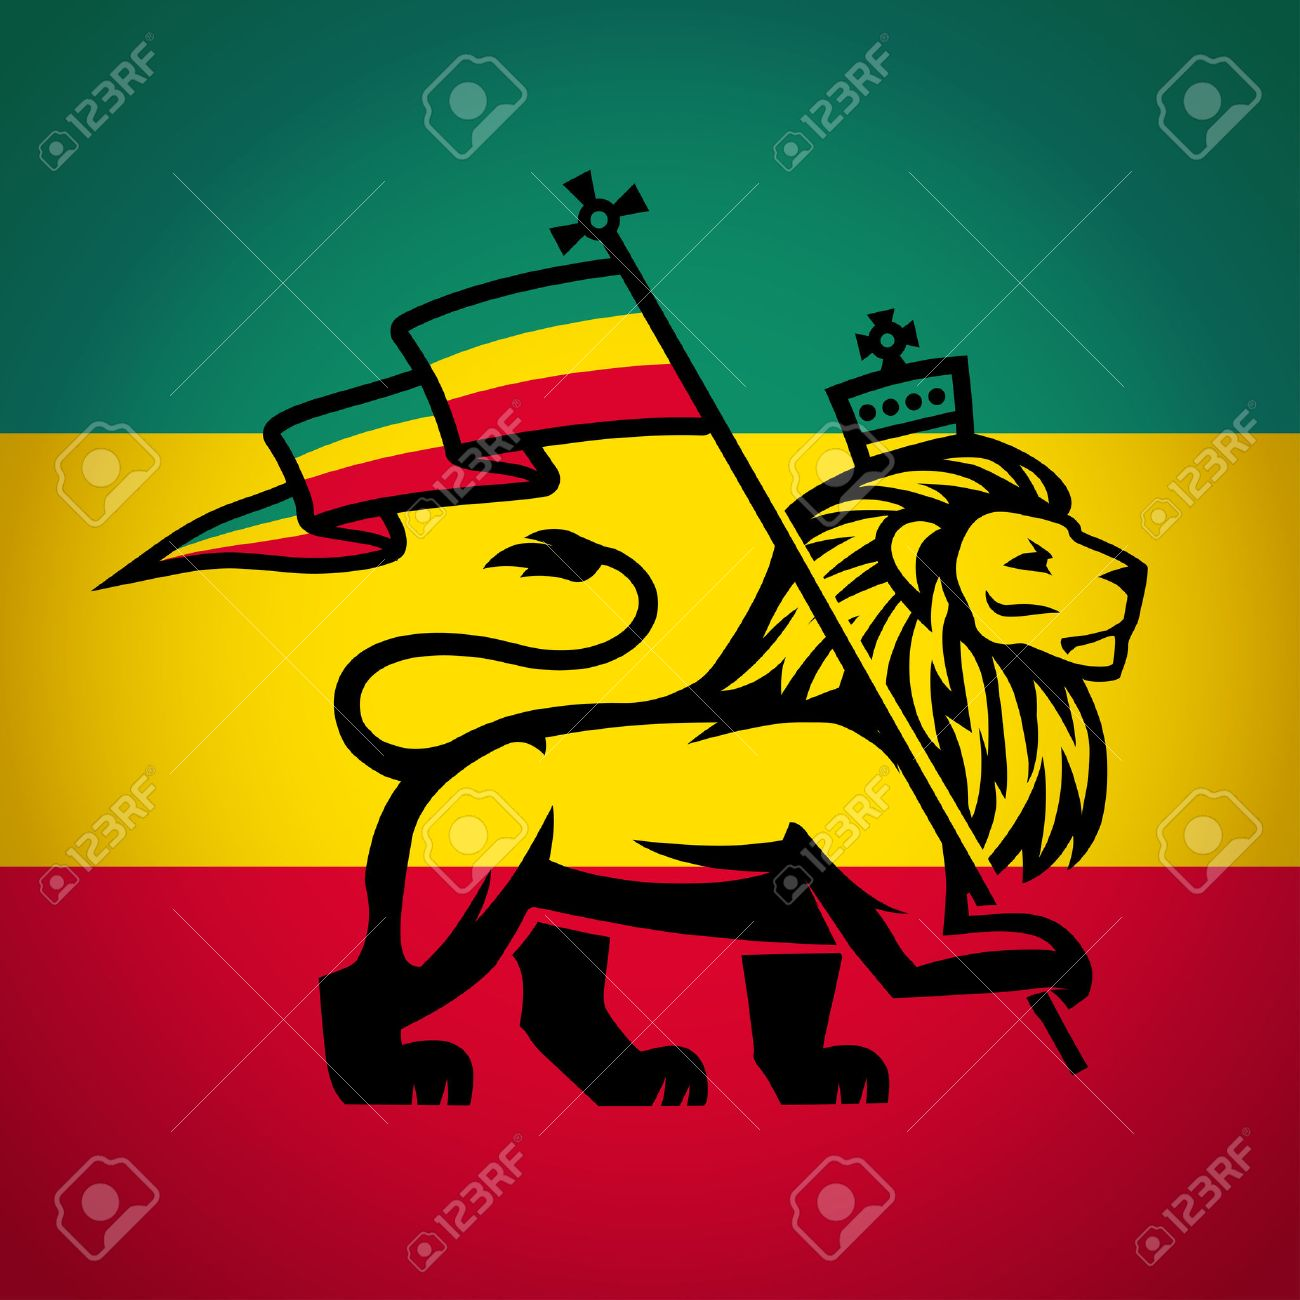 Reggae Stock Photos Royalty Free Reggae Images